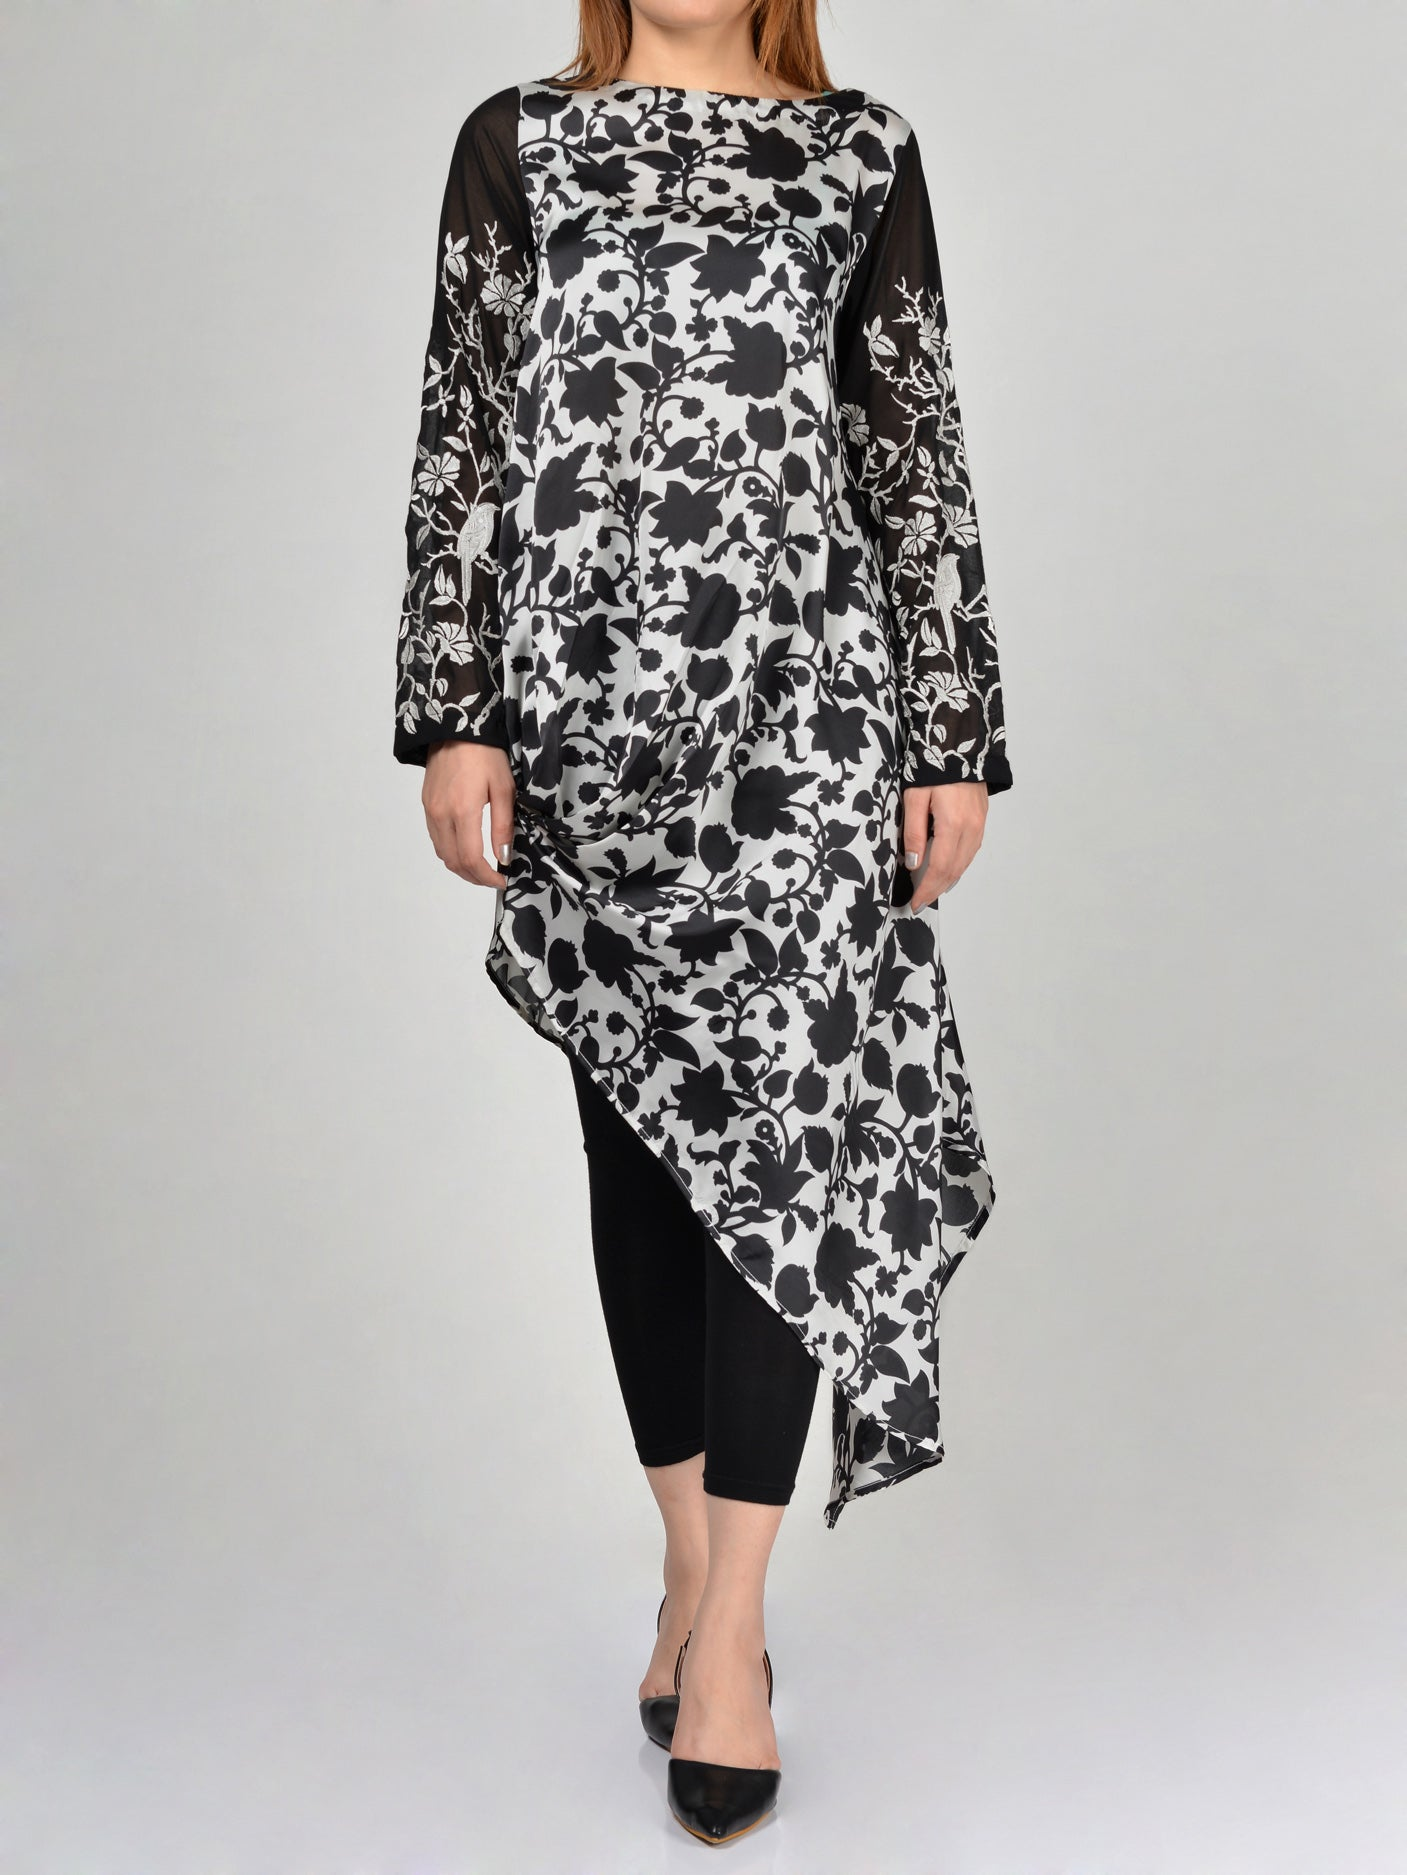 Embroidered Silk Shirt By Limelight F0388 Online in Pakistan | Limelight.pk